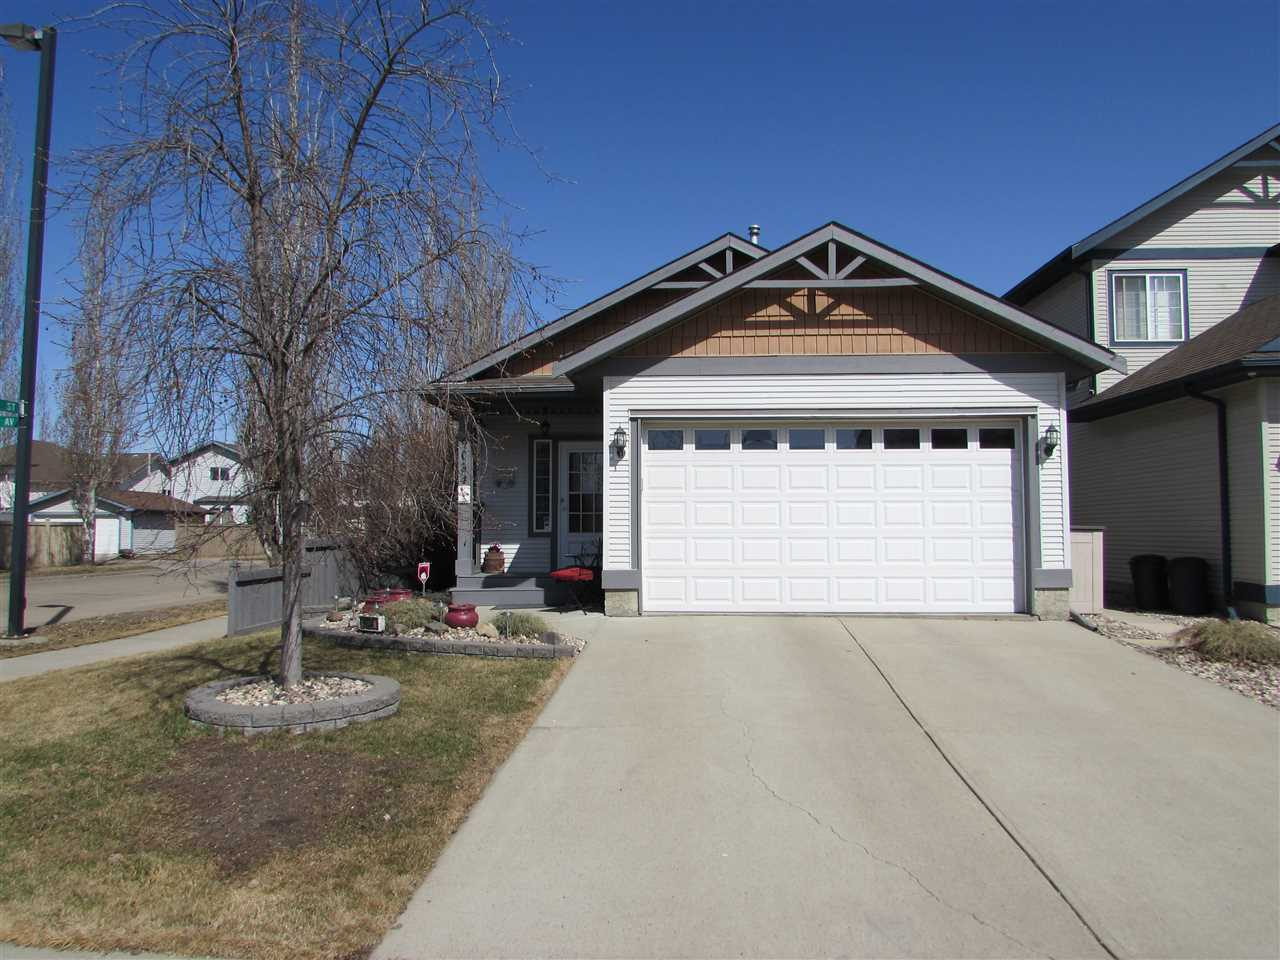 9034 165 Avenue NW, 4 bed, 2.1 bath, at $447,827